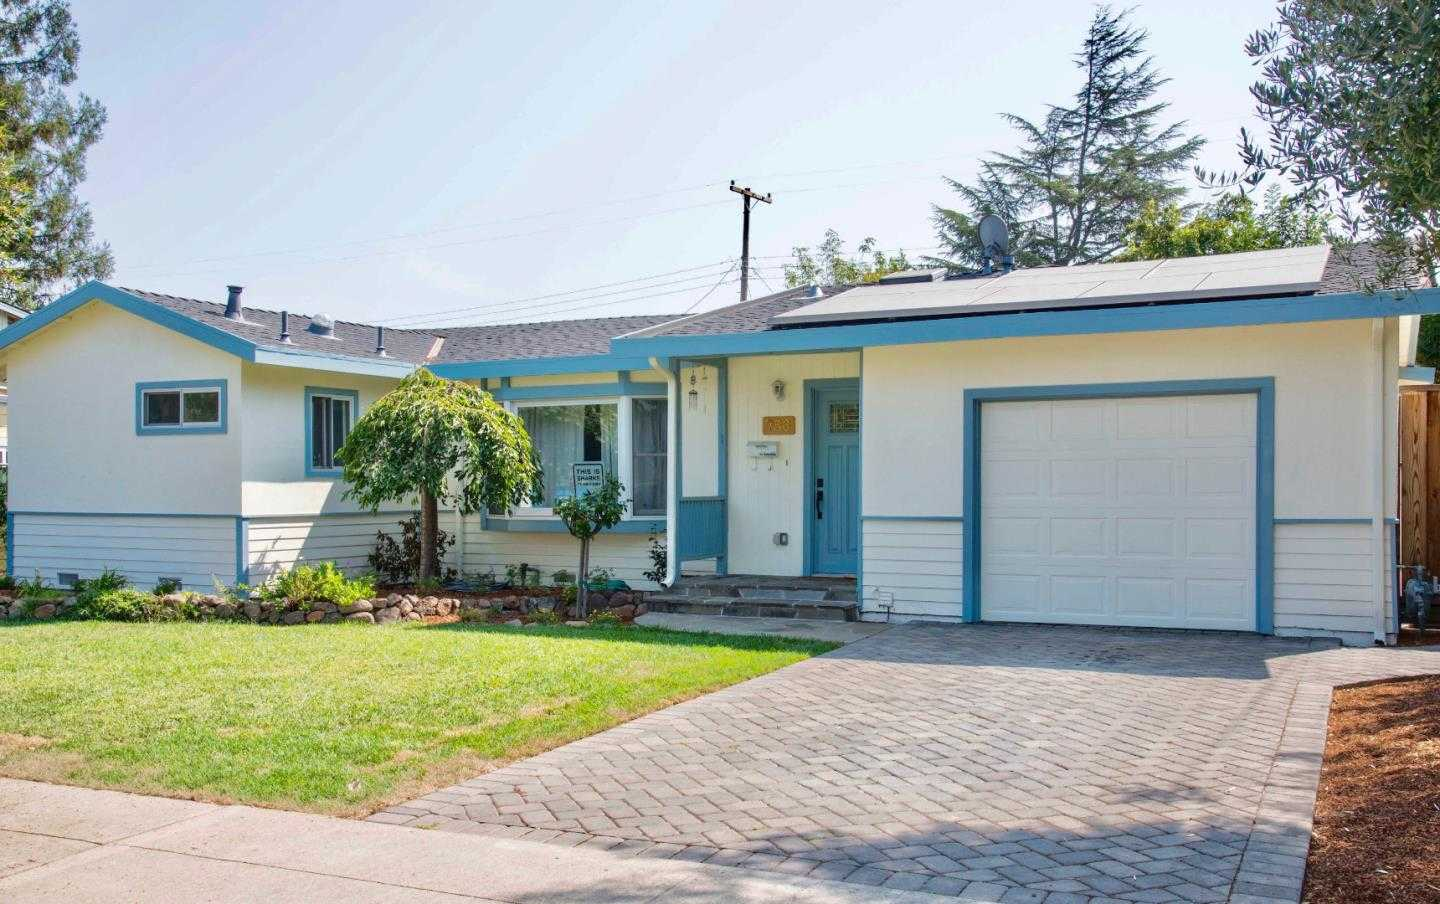 $1,598,000 - 3Br/3Ba -  for Sale in Sunnyvale